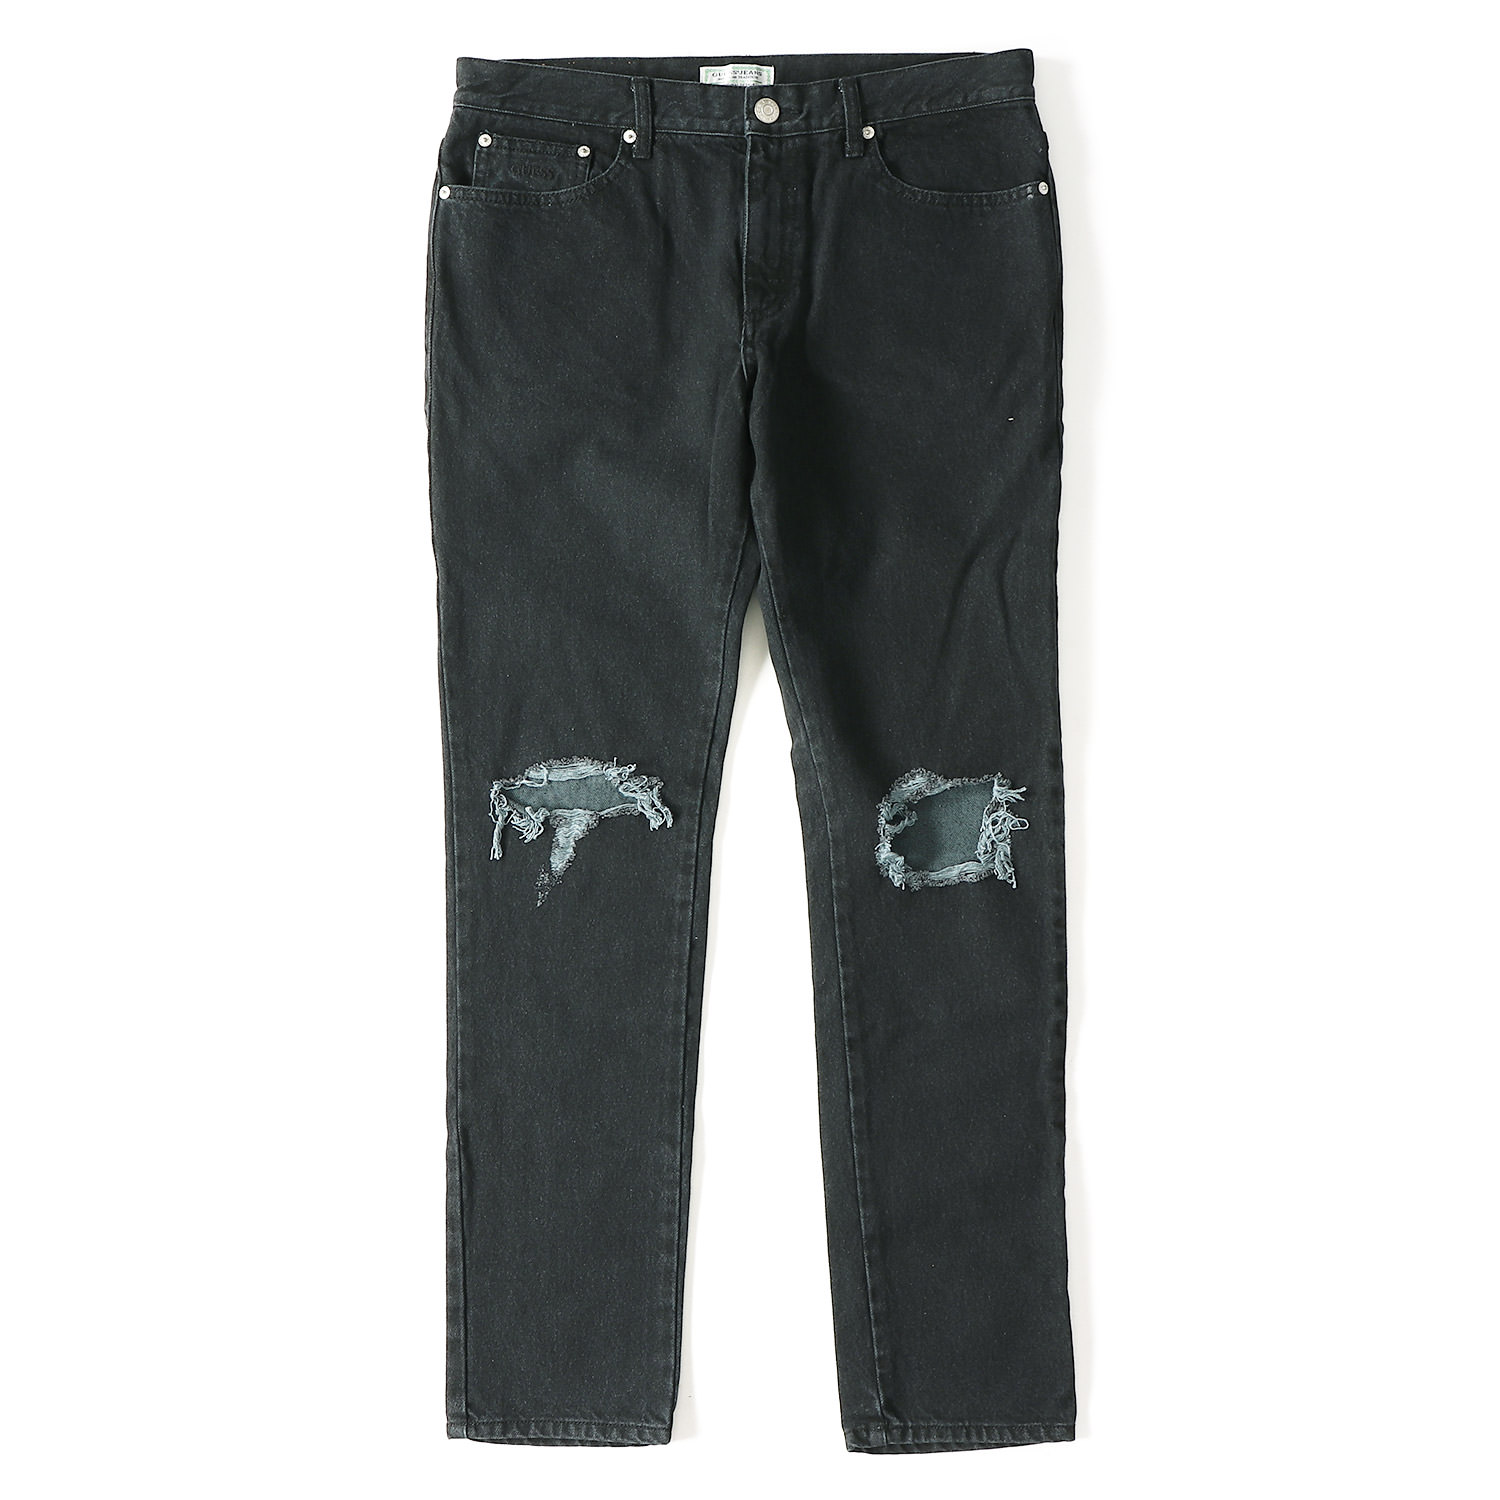 17A/W ダメージ加工スキニーデニム(GREEN LABEL SKINNY DAMAGE DENIM)